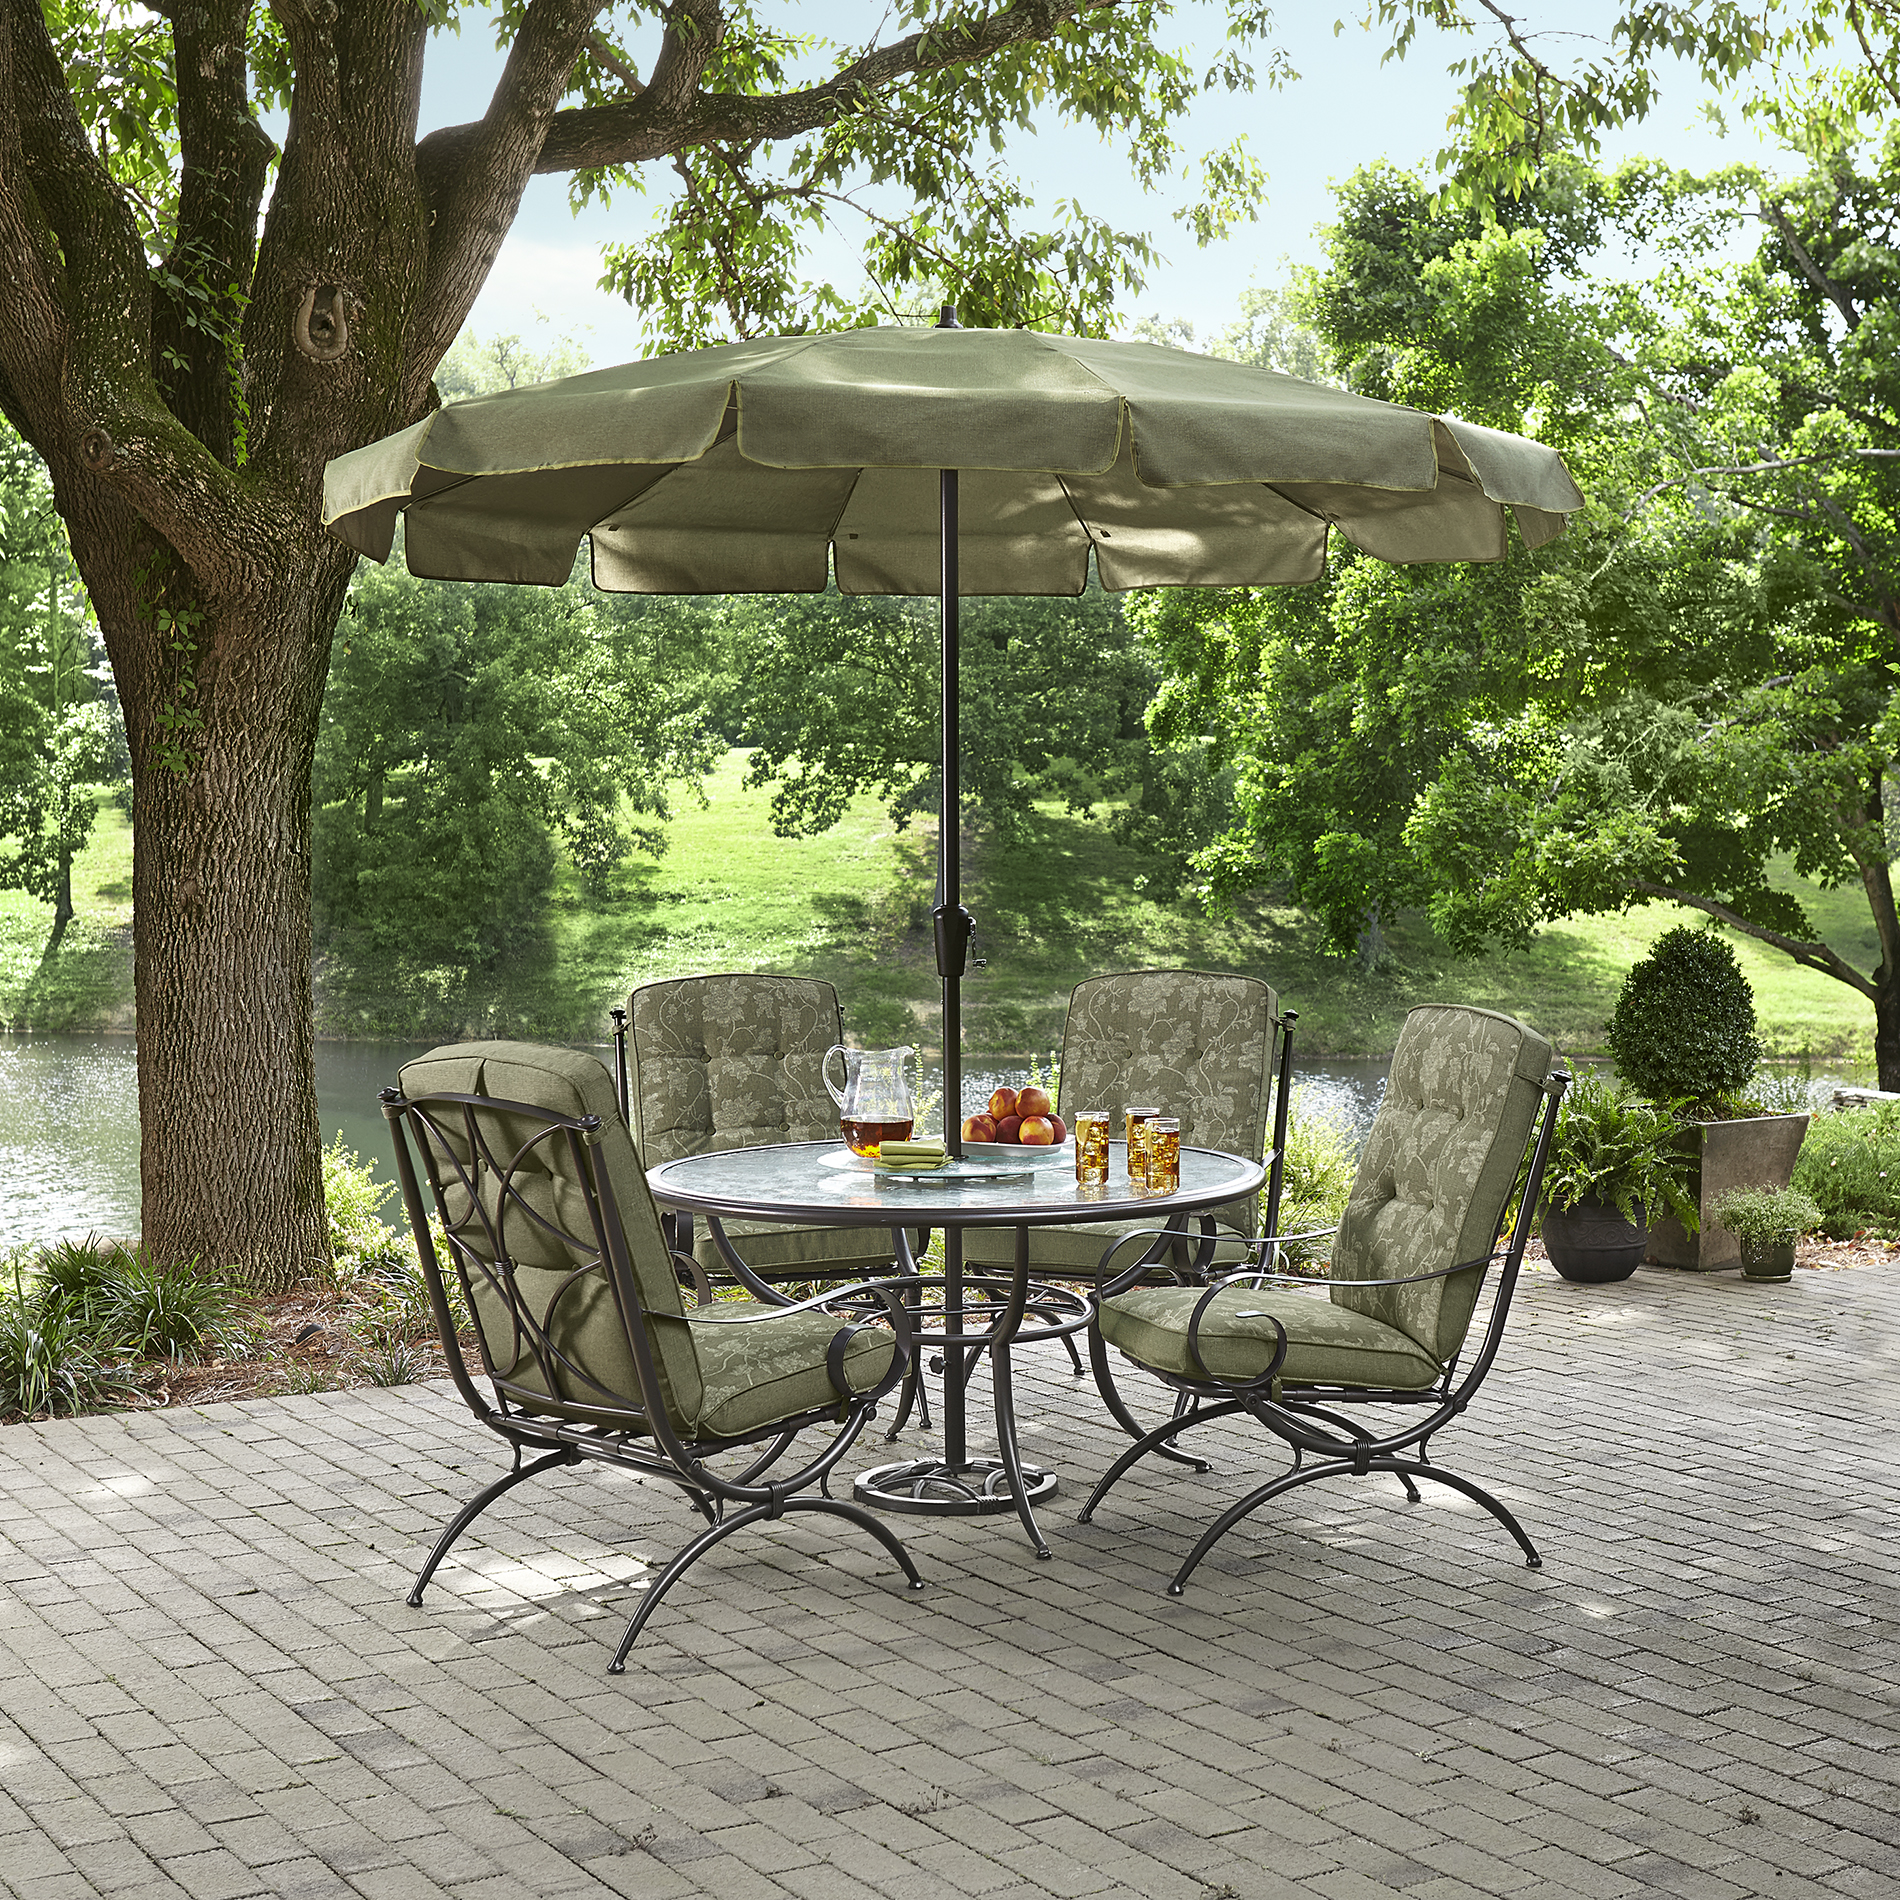 offset patio umbrella clearance kontiki shade cooling kmart furniturekmart outdoor furniture cushions accent table umbrellas round len graphy dining chairs bunnings small garden